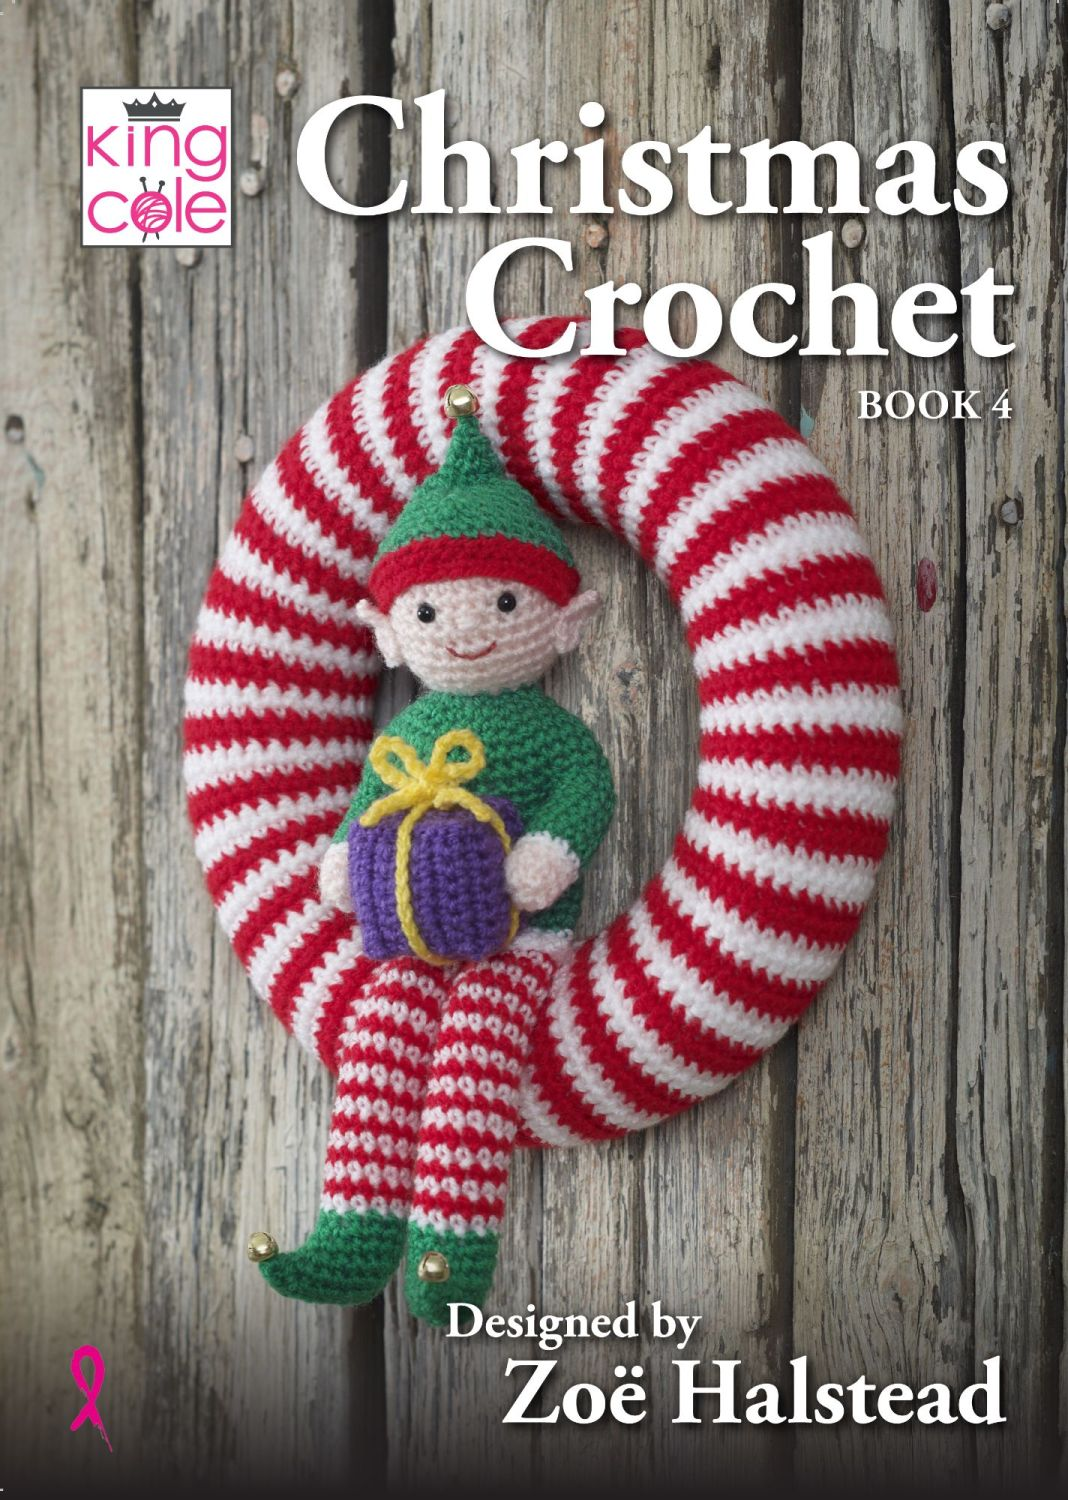 Christmas Crochet Book 4 - Designed by Zoe Halstead